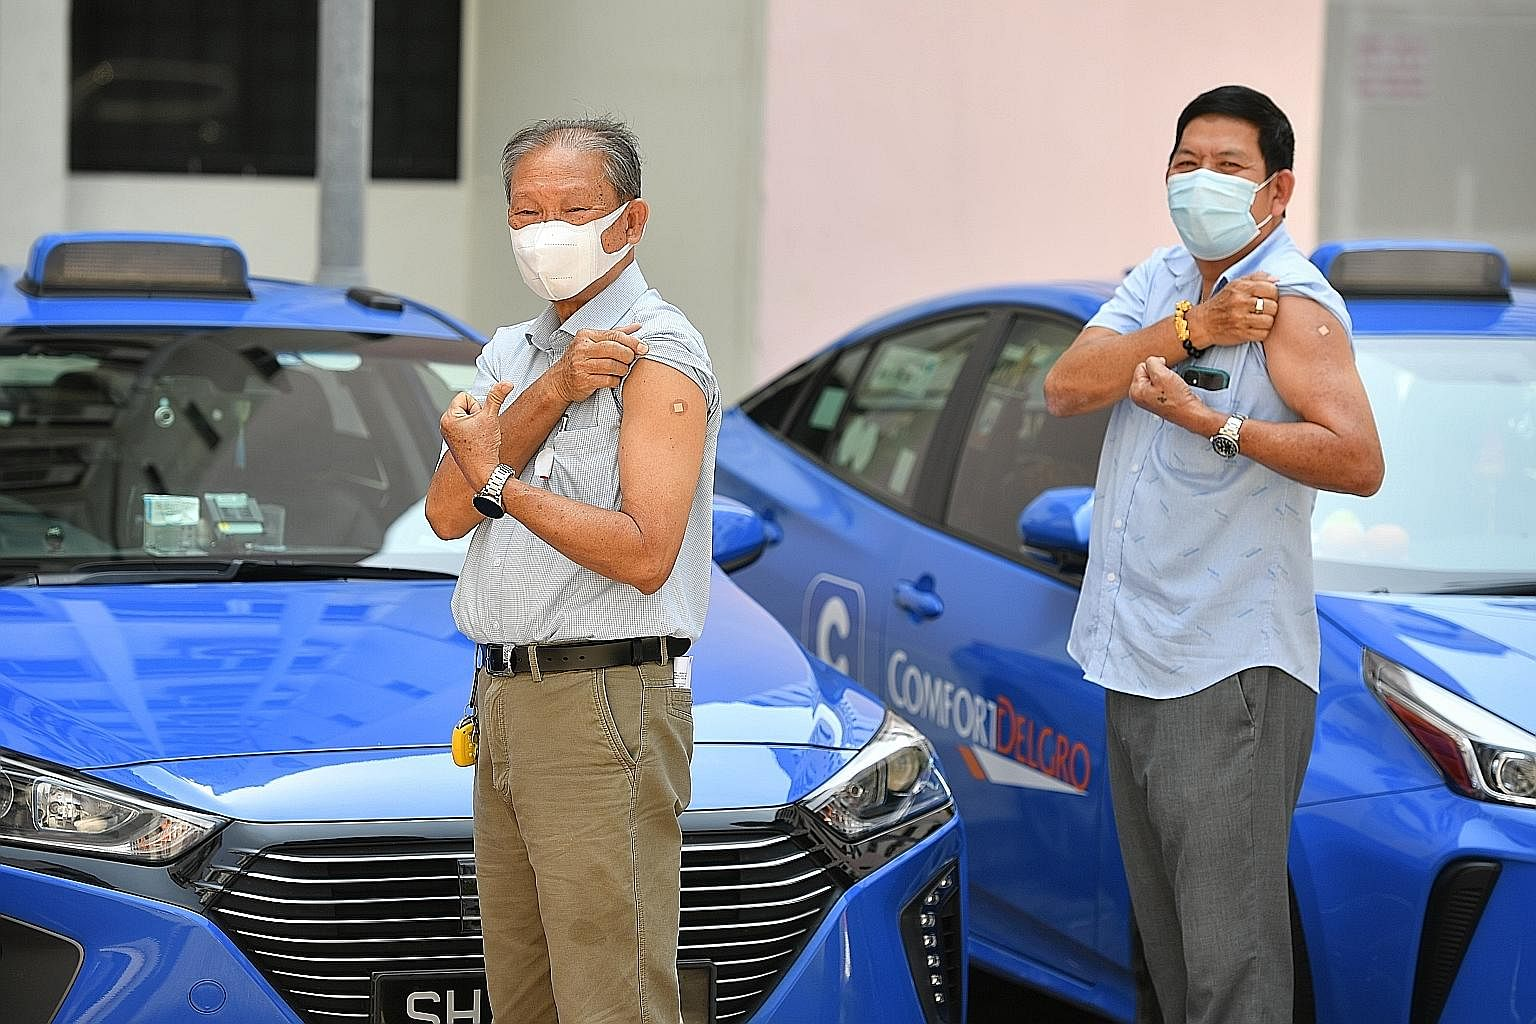 More than 50,000 active taxi and private-hire car drivers will be offered the chance to get their first dose of the Covid-19 vaccine by the end of this week. About 300 drivers, including cabbies Tham Yuet Kok (right) and Tan Eng Chuan (far right), ha